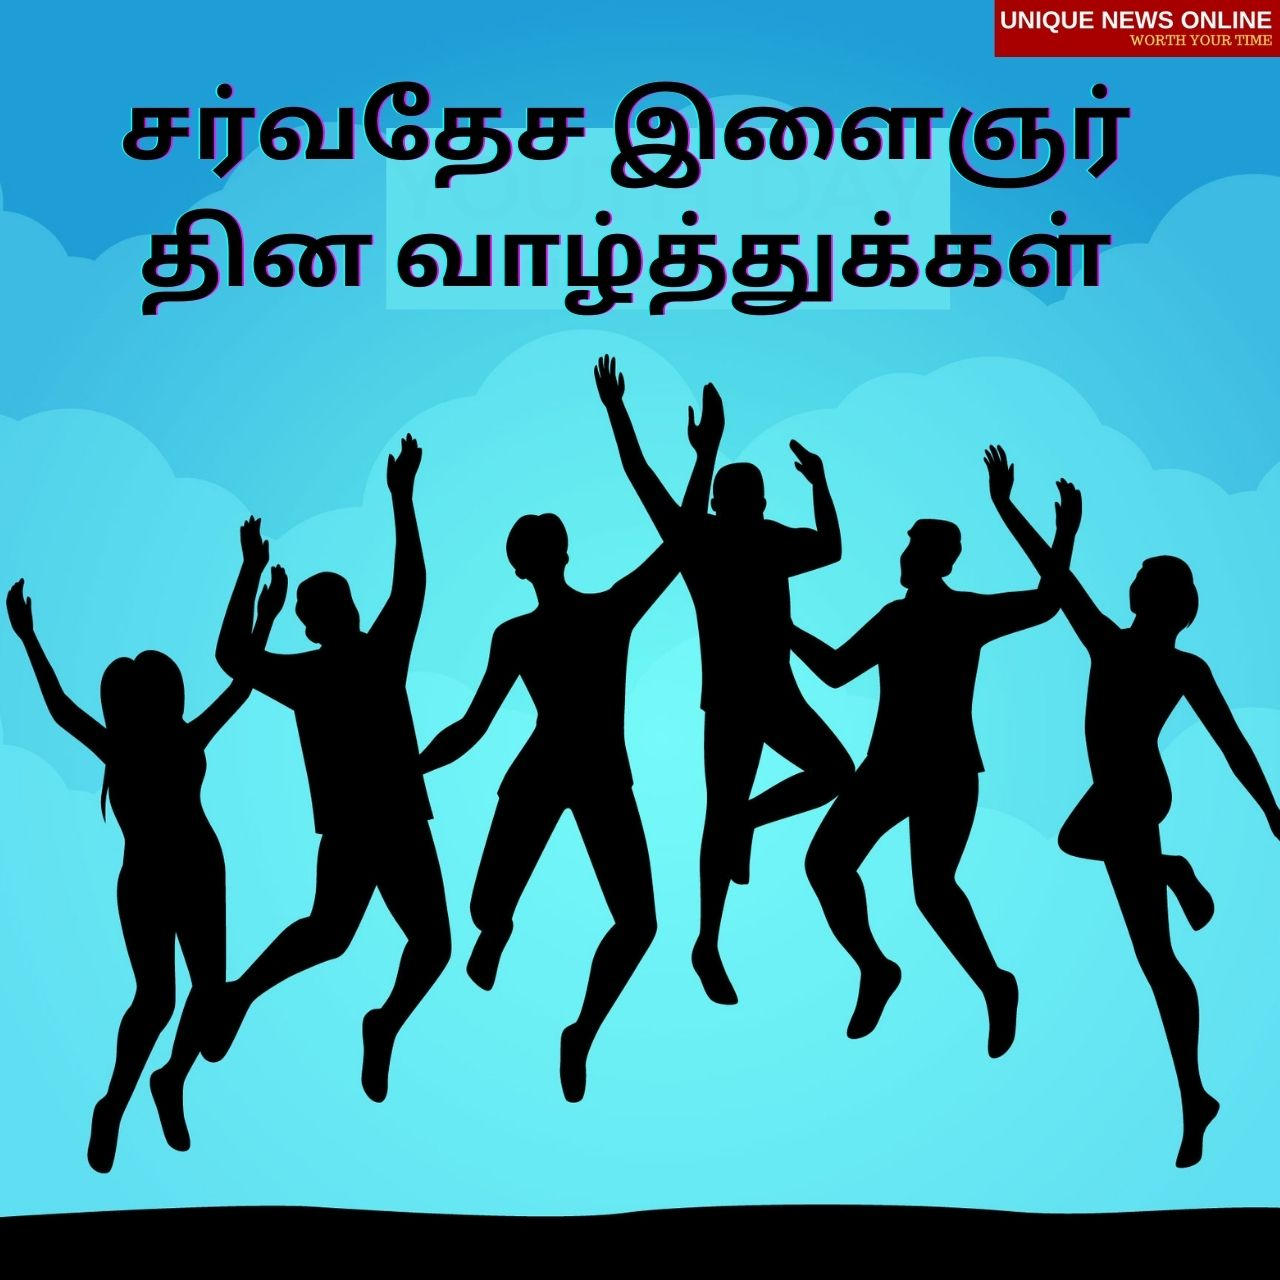 International Youth Day 2021 Tamil Wishes, Quotes, Poster, Messages, Greetings, Status, and HD Images to Share